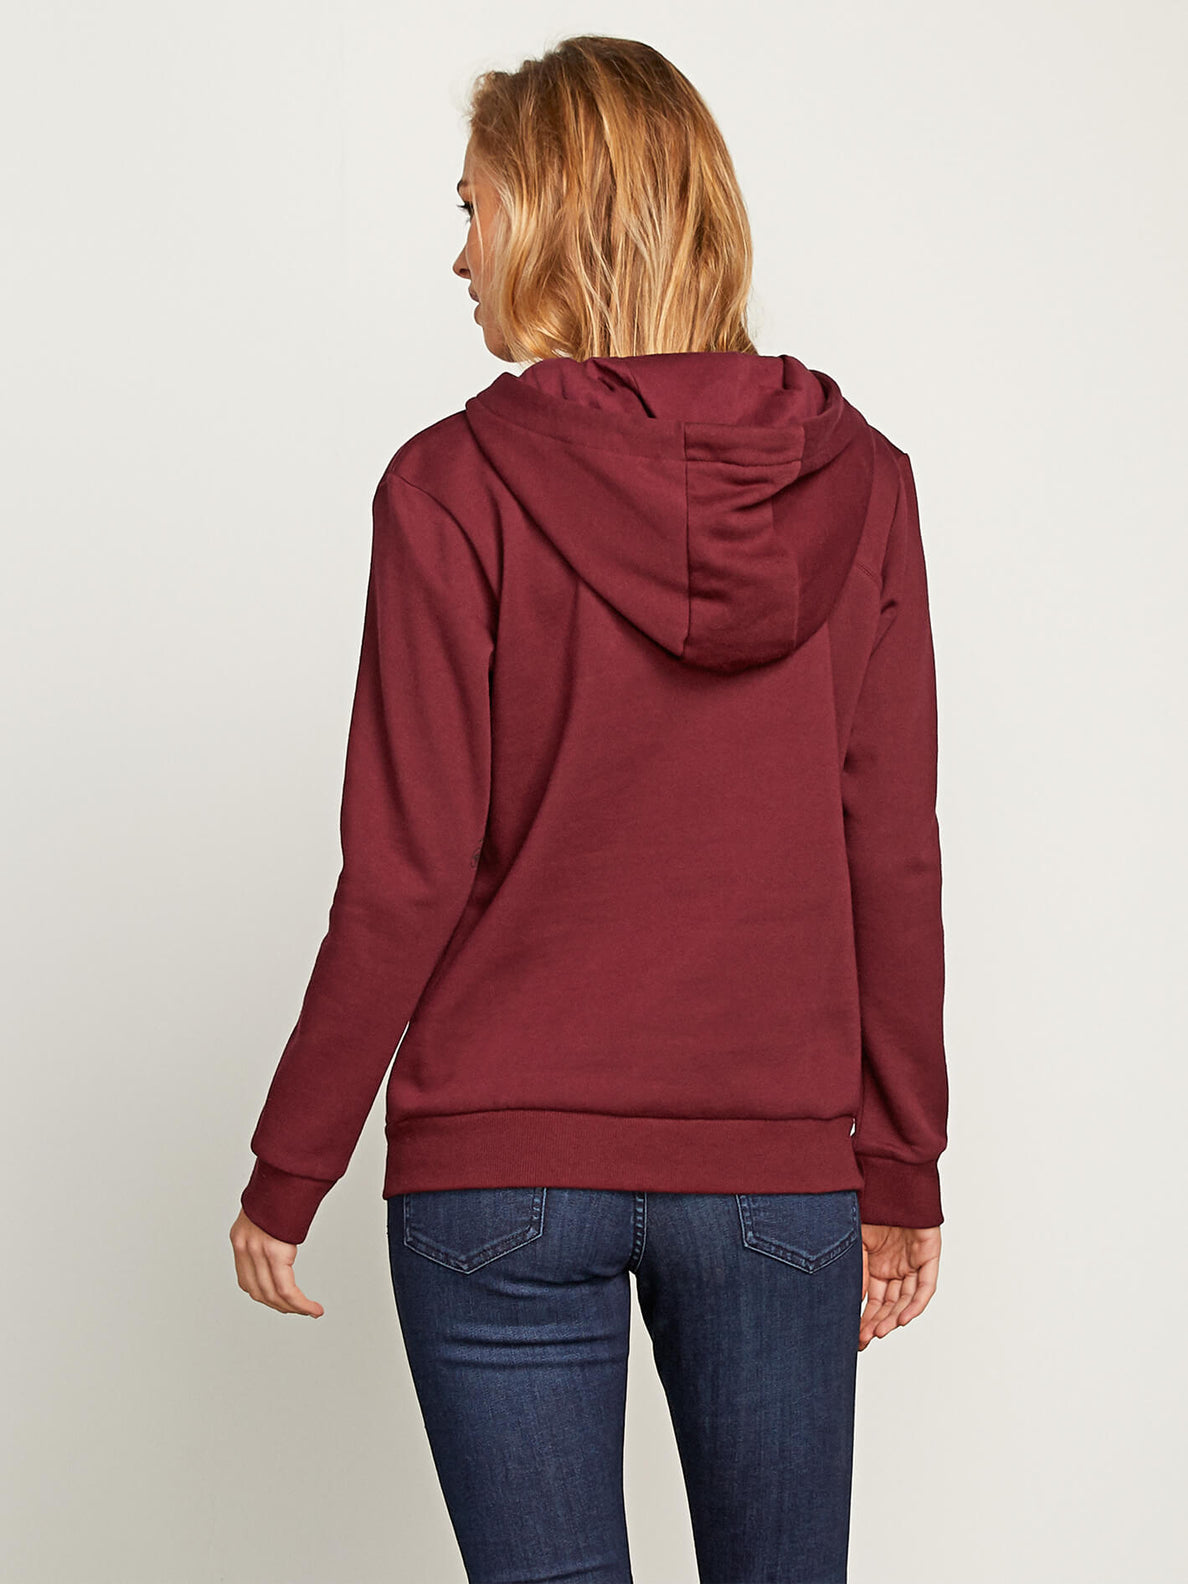 Walk On By High Neck In Zinfandel, Back View